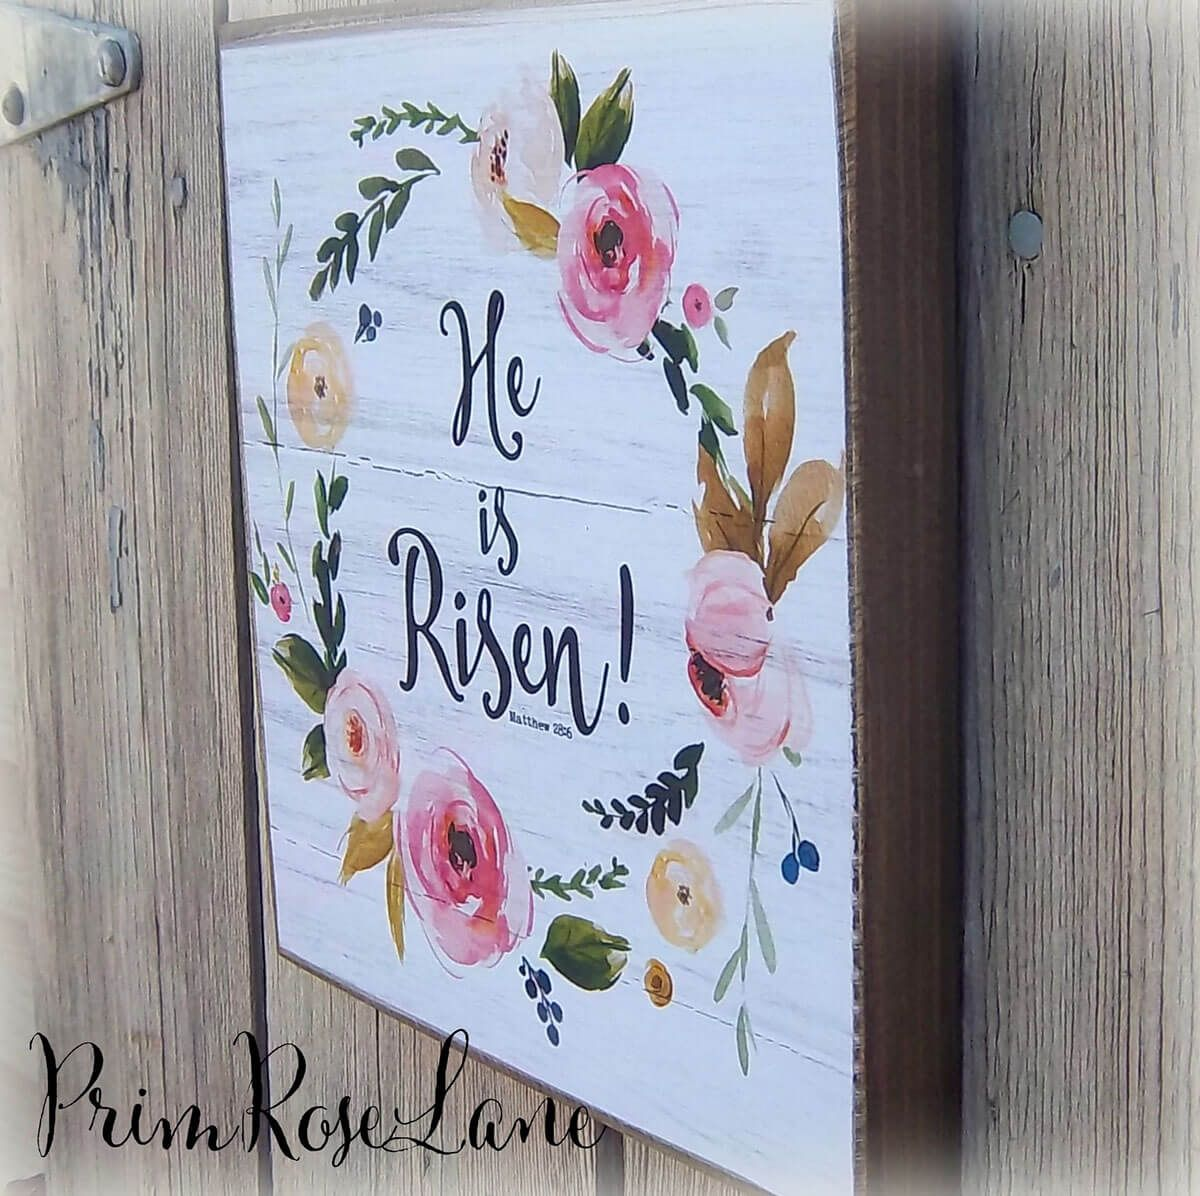 36 Painted Reclaimed Wood Ideas For Chic And Charming Home Decor Wood Signs Bible Verse Scripture Signs Easter Wall Art